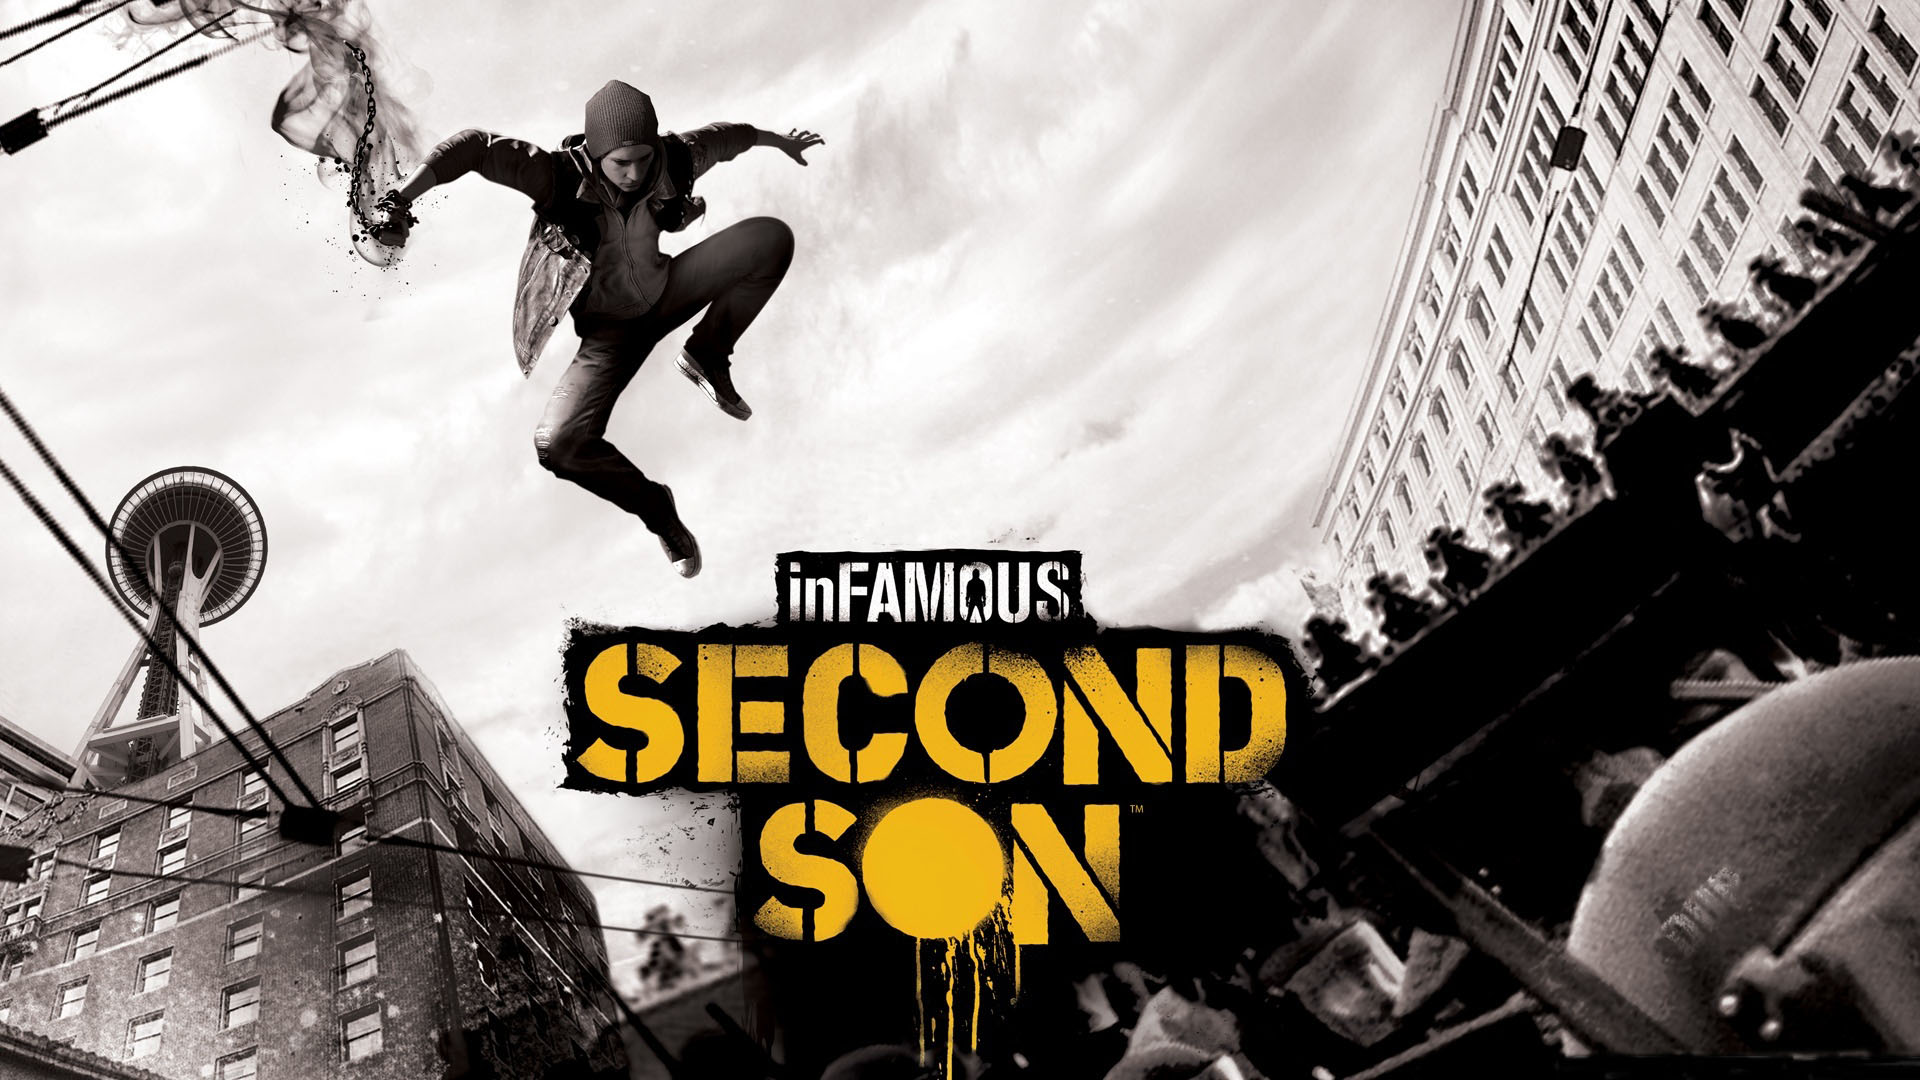 infamous second son pc download